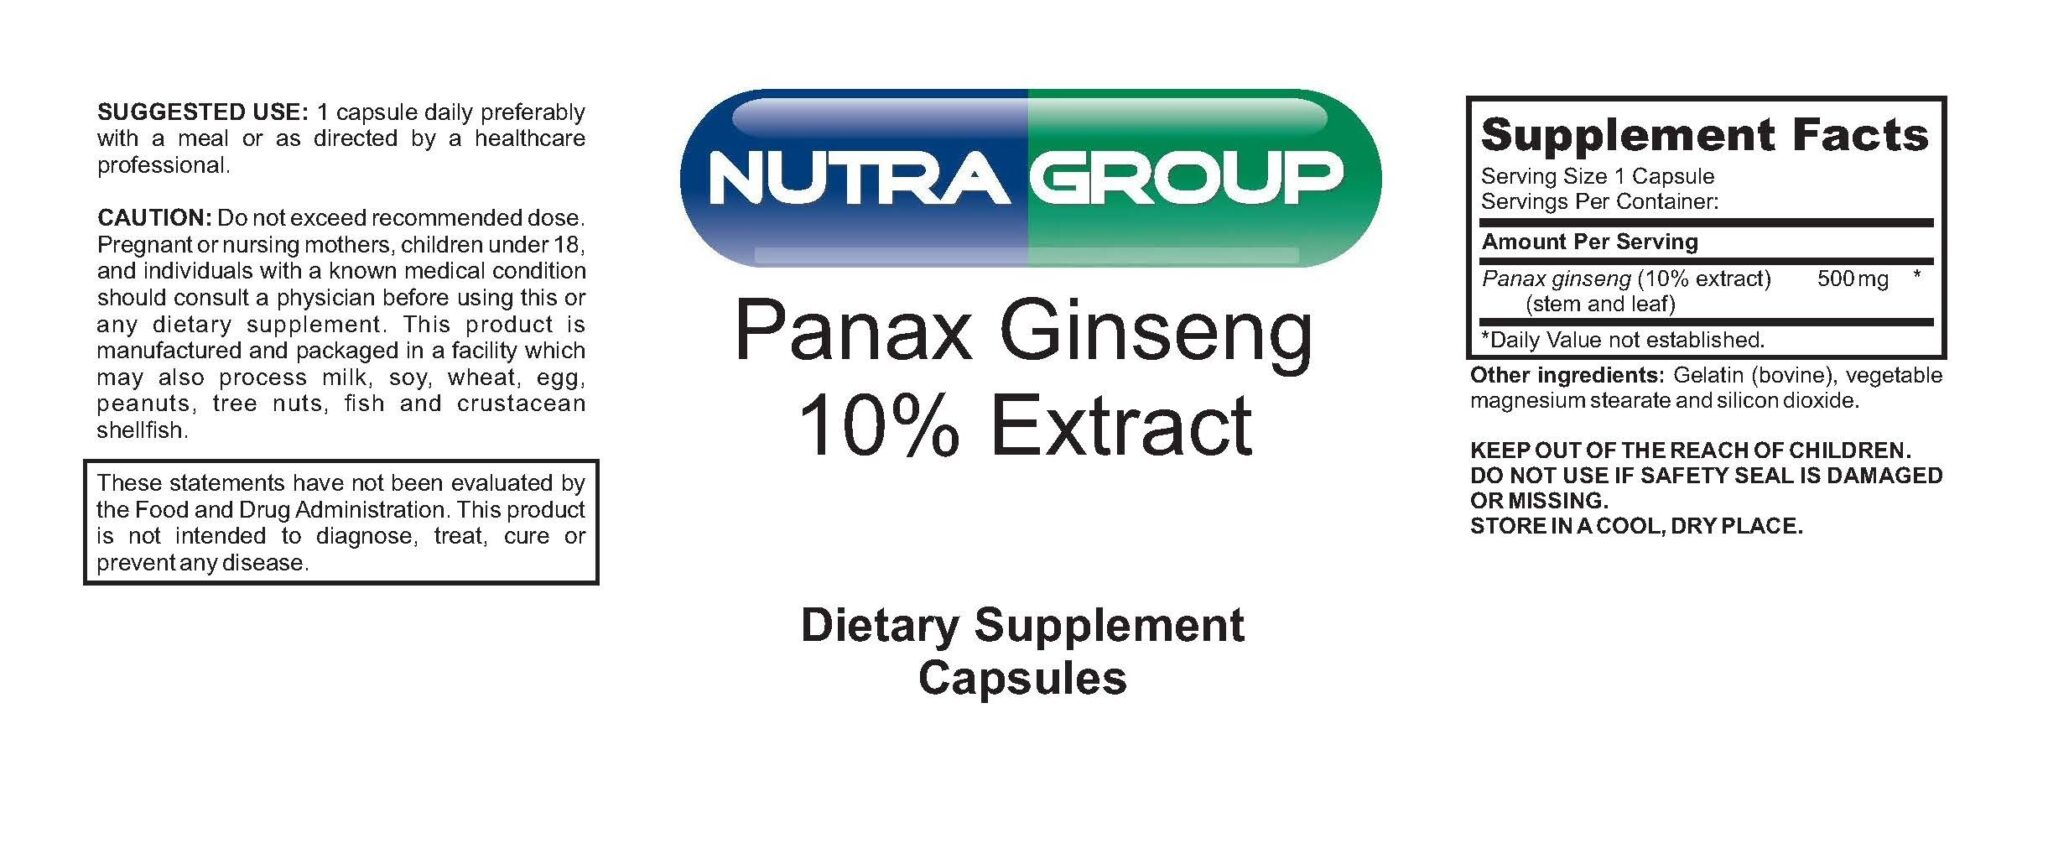 Private Label Panax Ginseng Extract